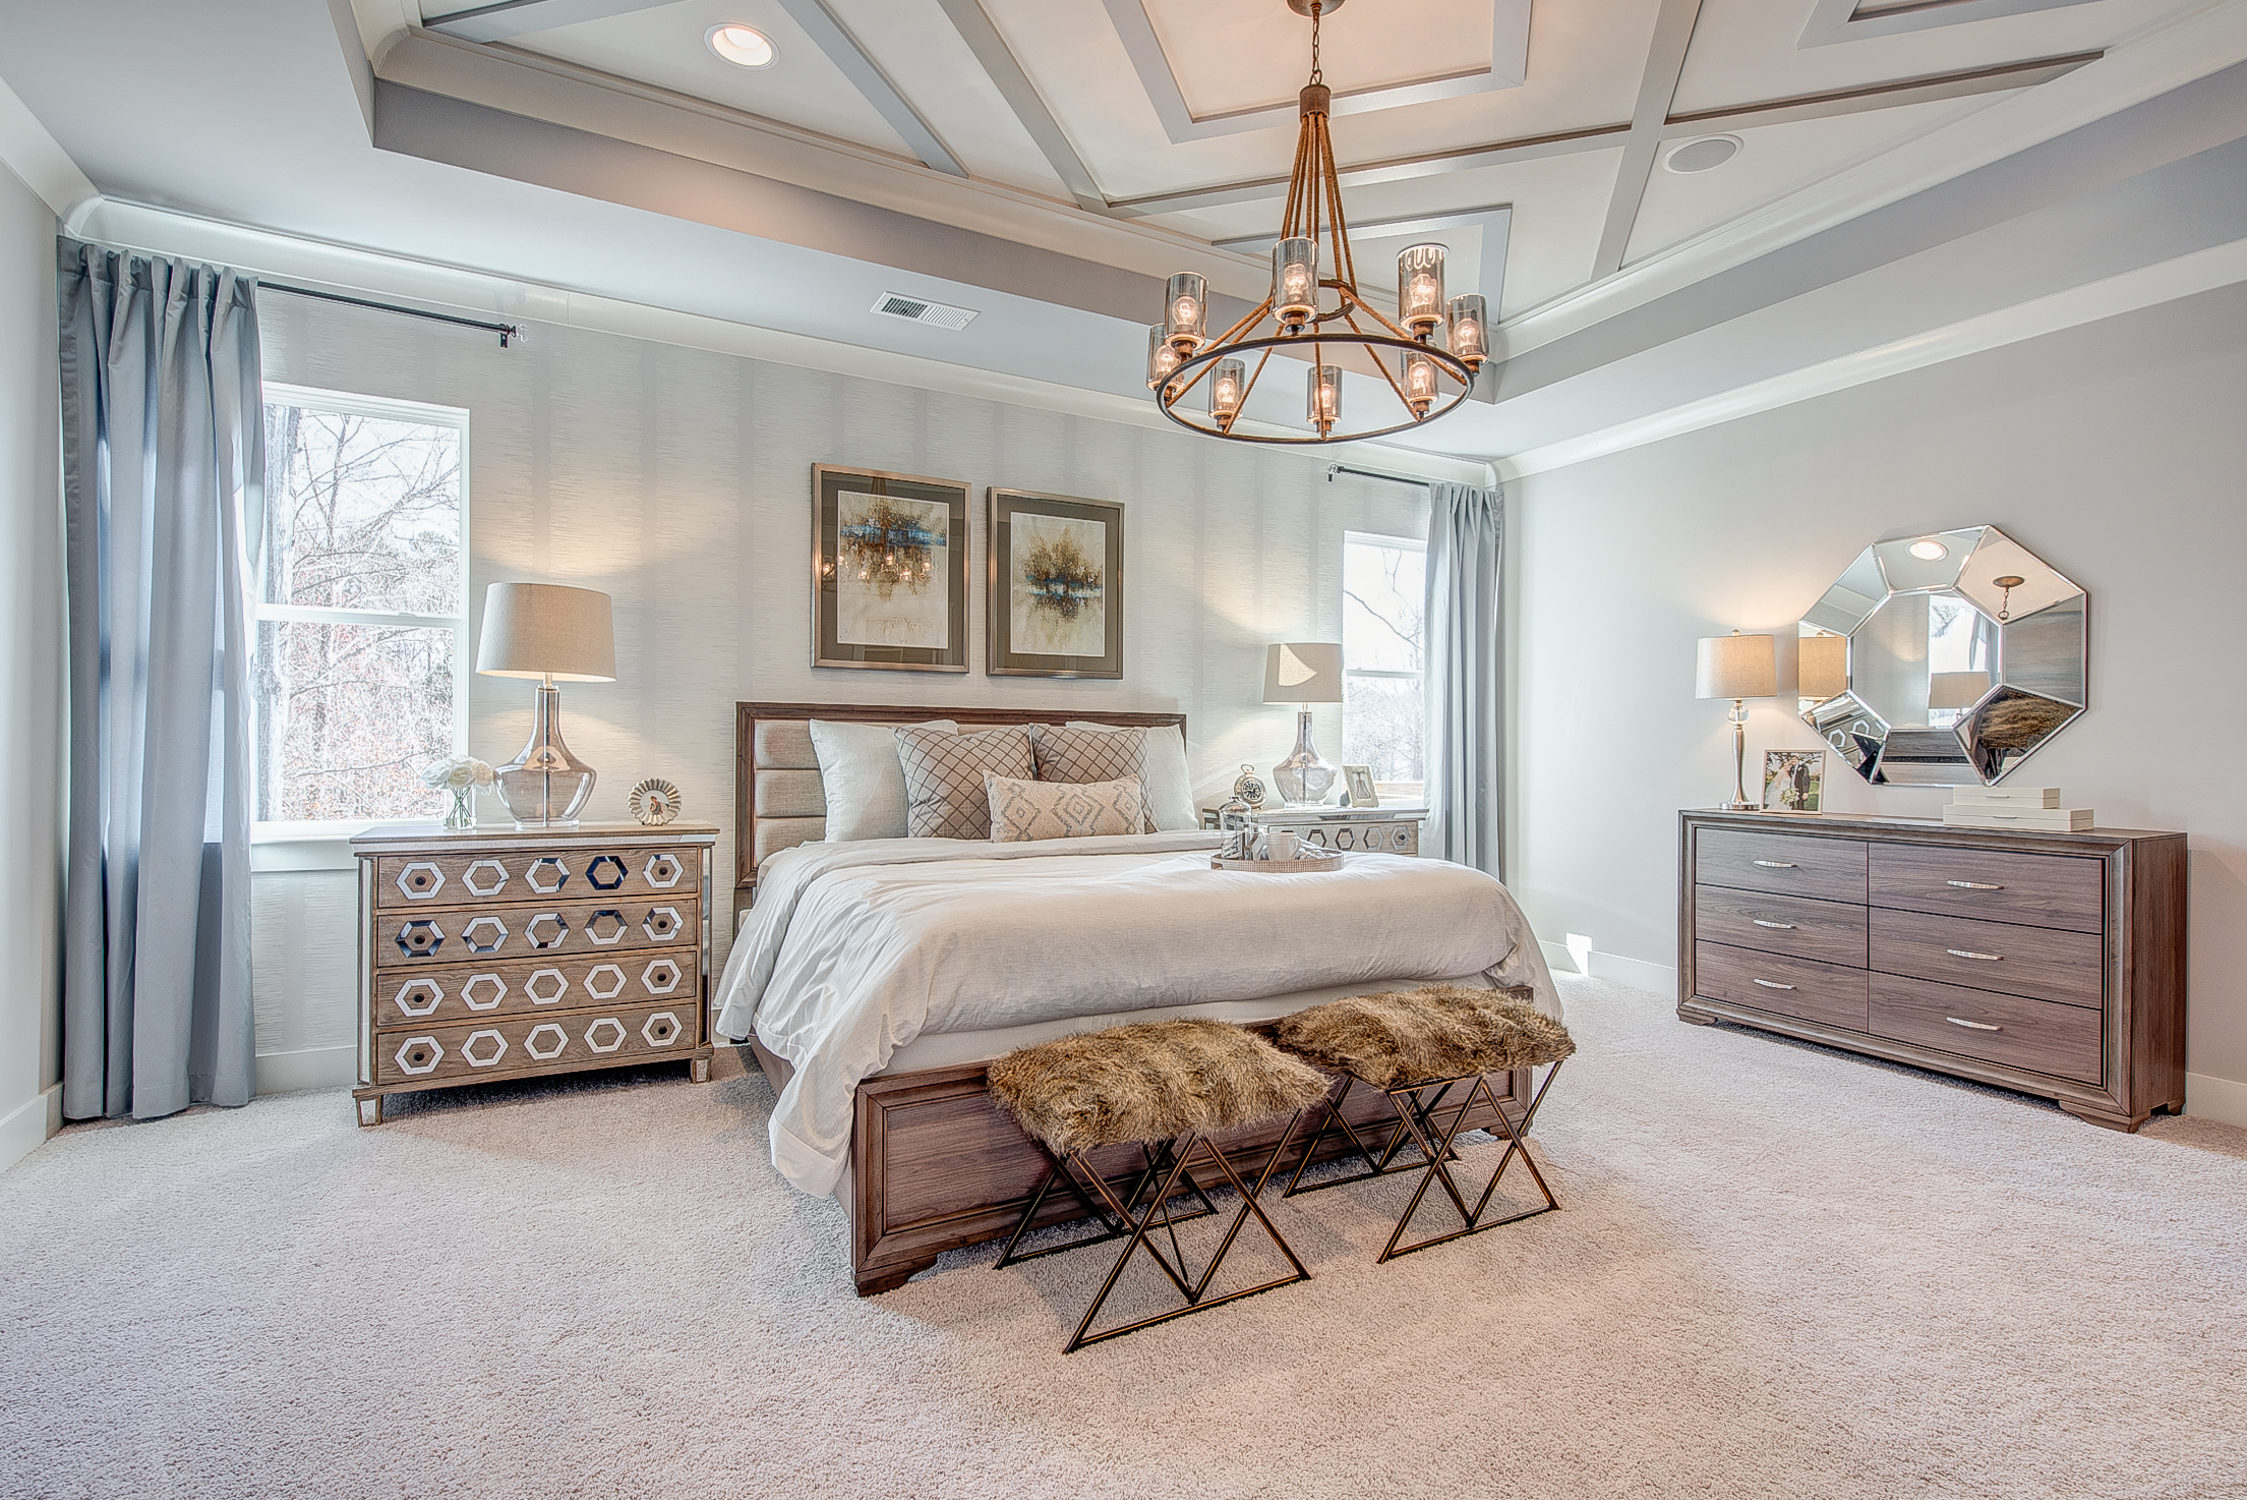 104-bushney-loop-mooresville-print-025-24-owners-bedroom-2247x1500-300dpi_33373102550_o.jpg